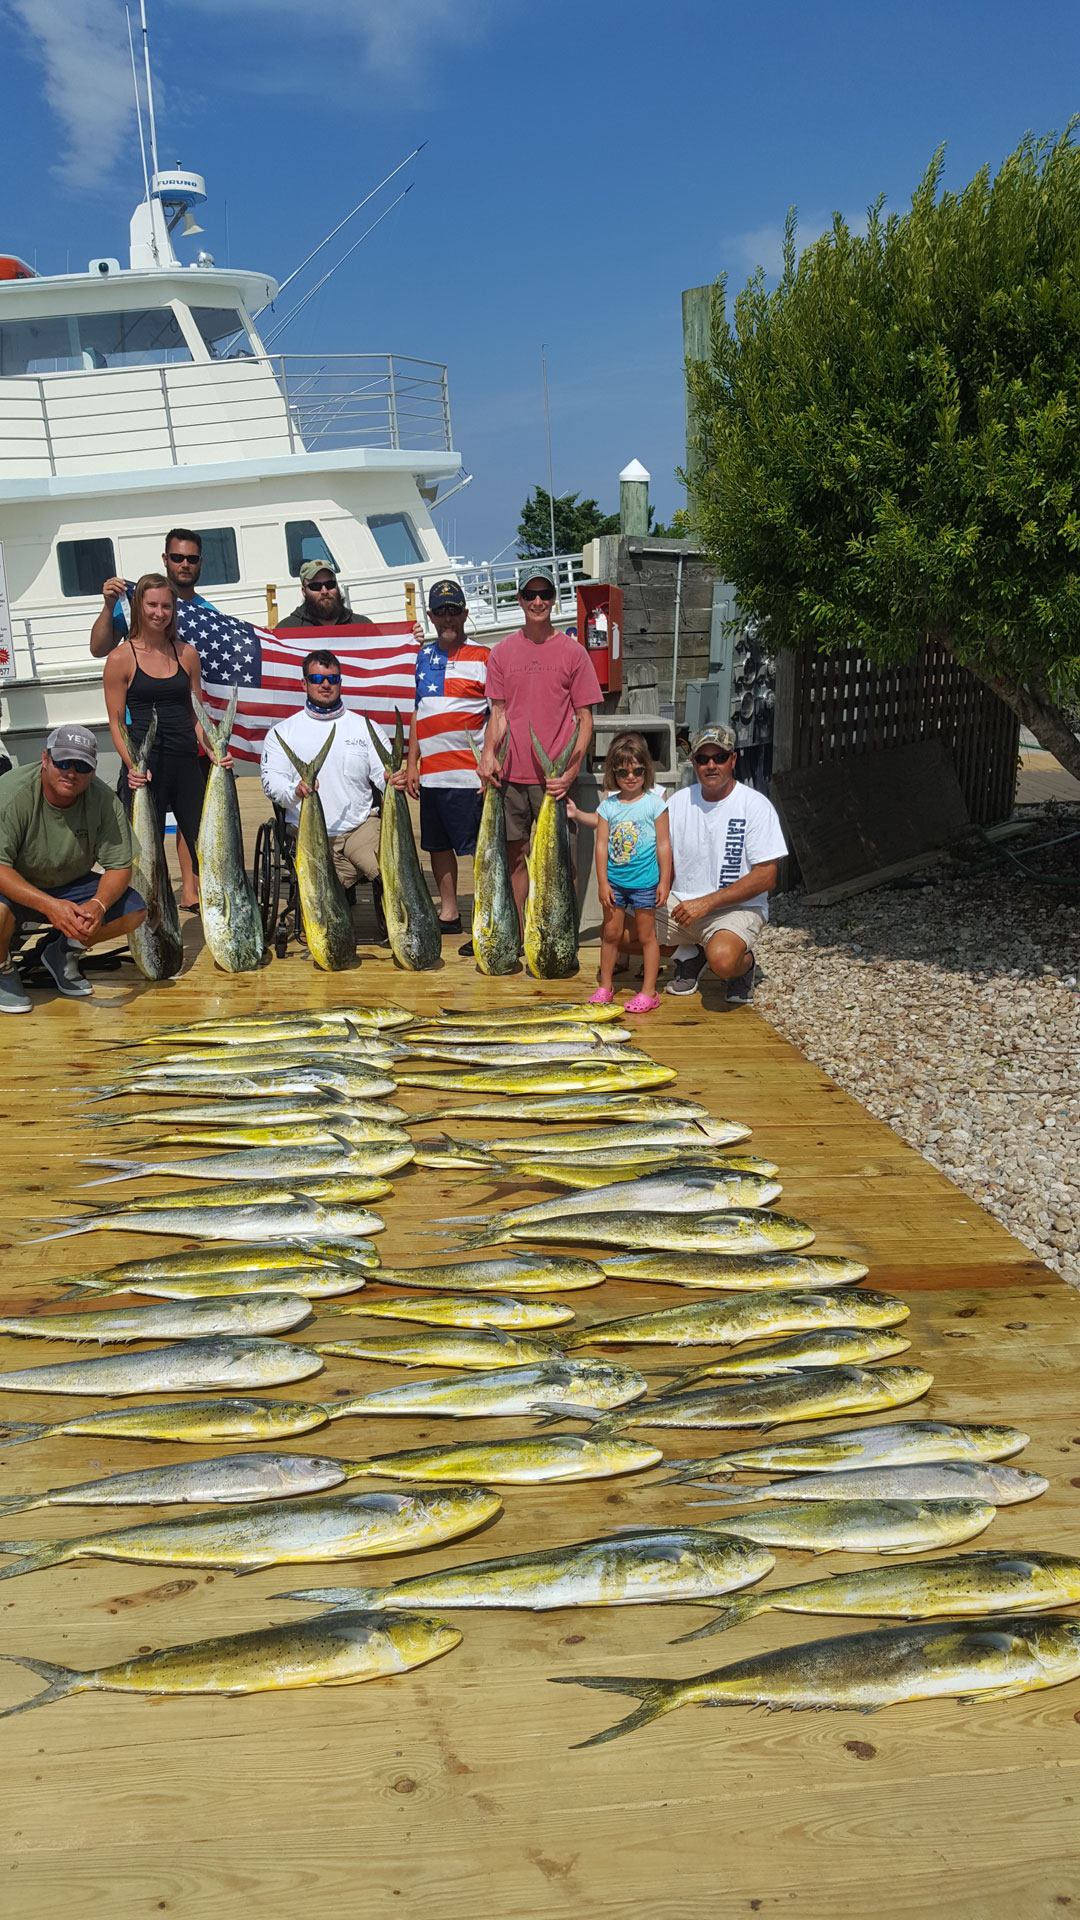 One of the most enjoyable days I've had running a charter boat. All these guys are veterans and it was awesome seeing them have such a good time. 49 dolphin weighed 460 lbs. Still a beautiful class of fish. The group picture with the flag and the other pictures with the gentleman in the wheelchair with his kids did my heart Good. We really need to be more thankful for these individuals and the freedoms we have Individuals